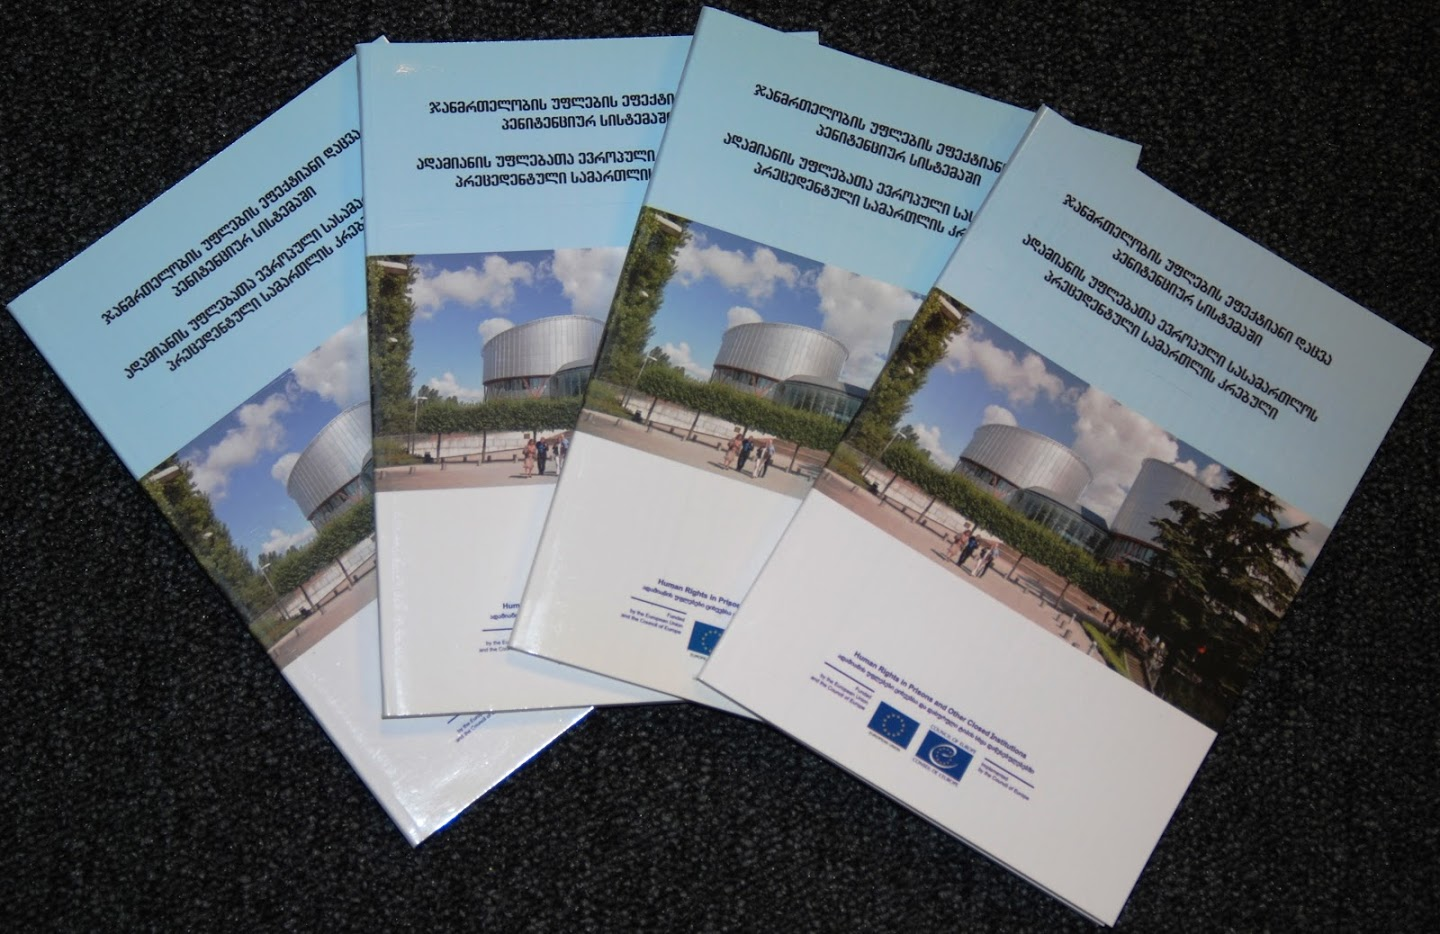 Compilation of summaries of the case law of the ECtHR on prison healthcare related issues was developed in Georgian and printed in 500 copies